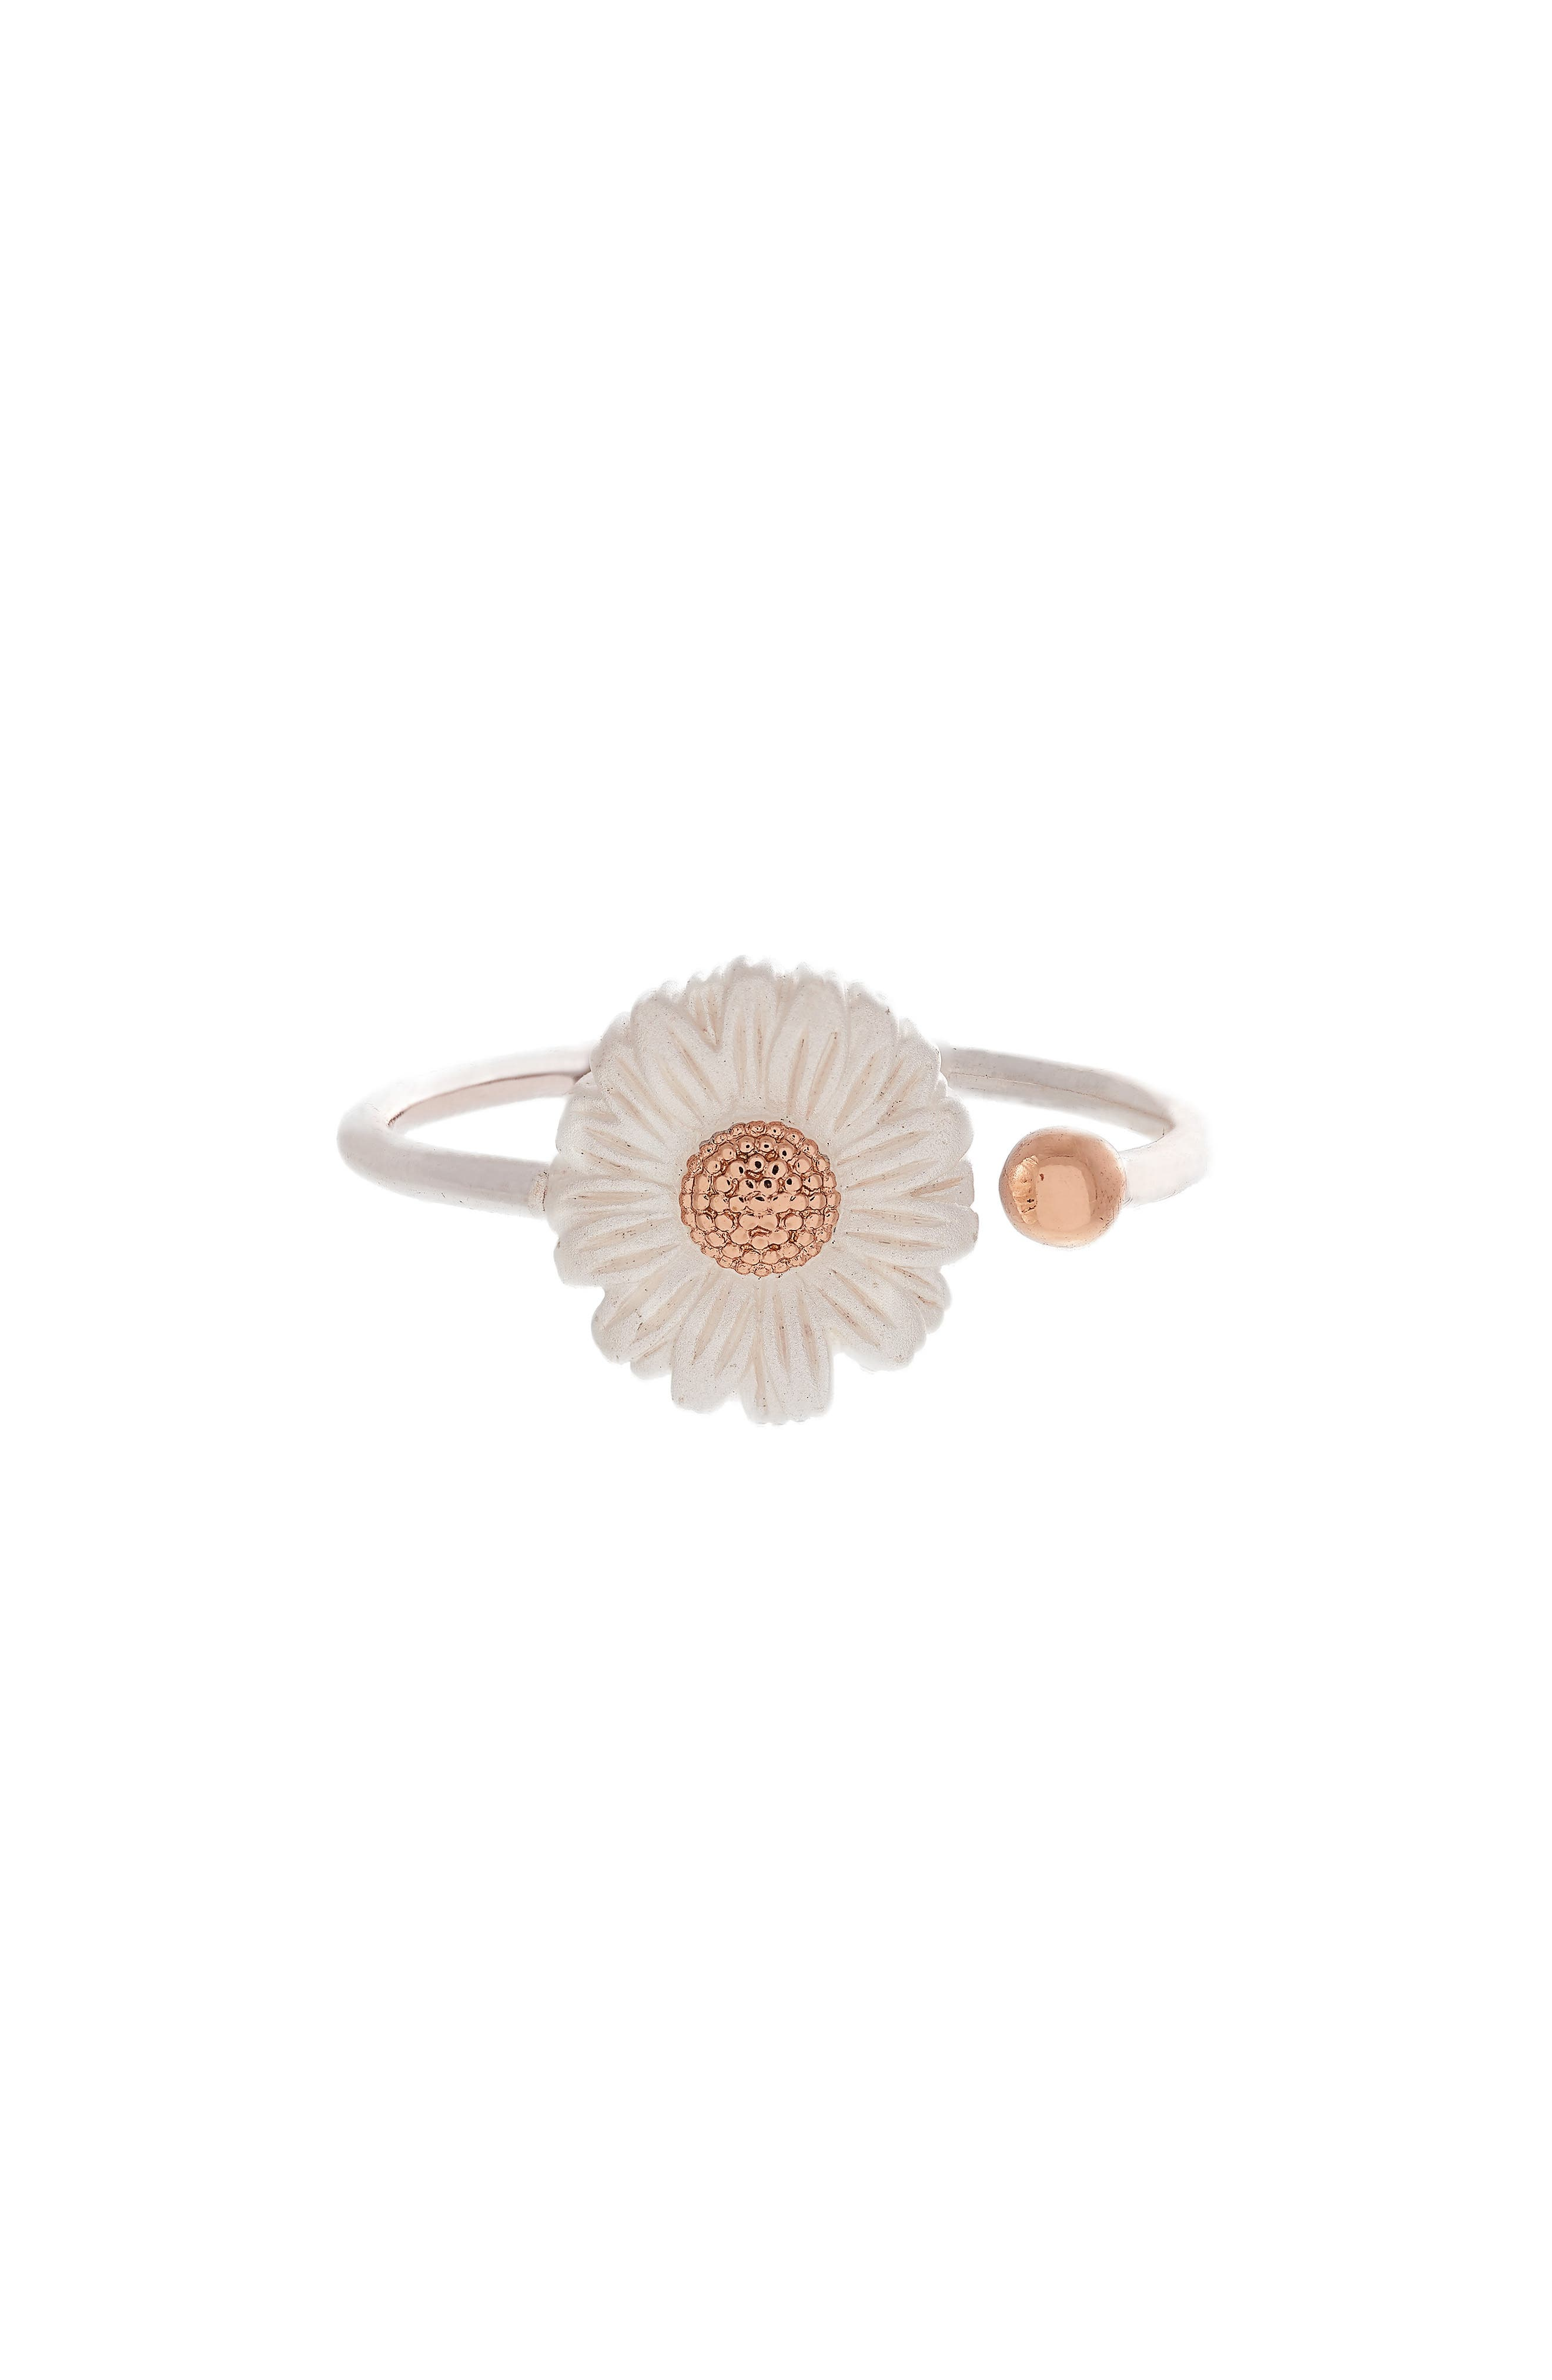 Daisy Ring,                             Main thumbnail 1, color,                             SILVER/ ROSE GOLD